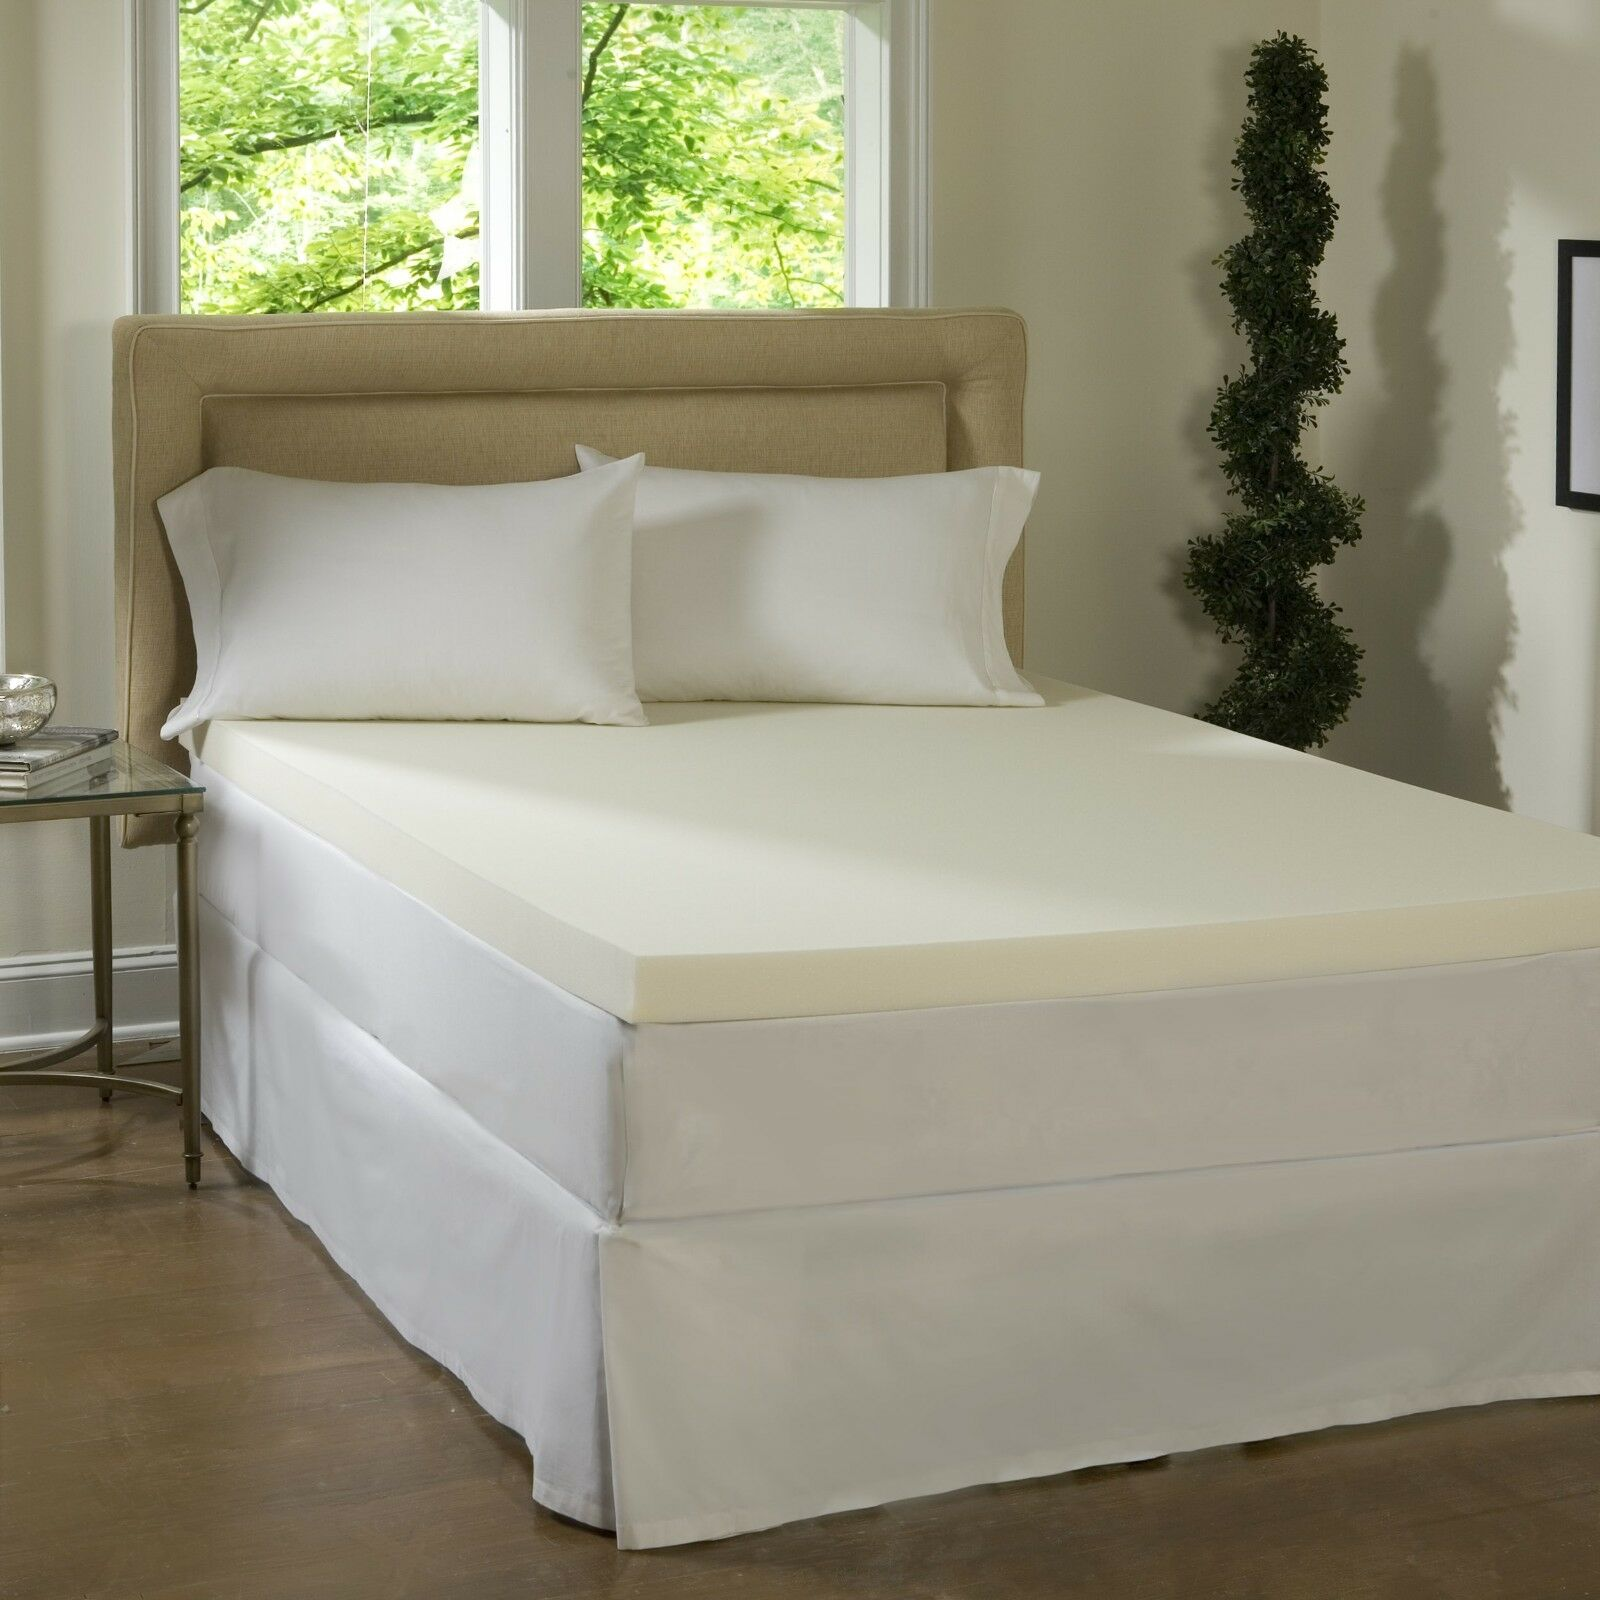 NEW  2  ULTIMATE COMFORT LUXURY MEMORY FOAM BED MATTRESS PAD TOPPER MADE IN USA